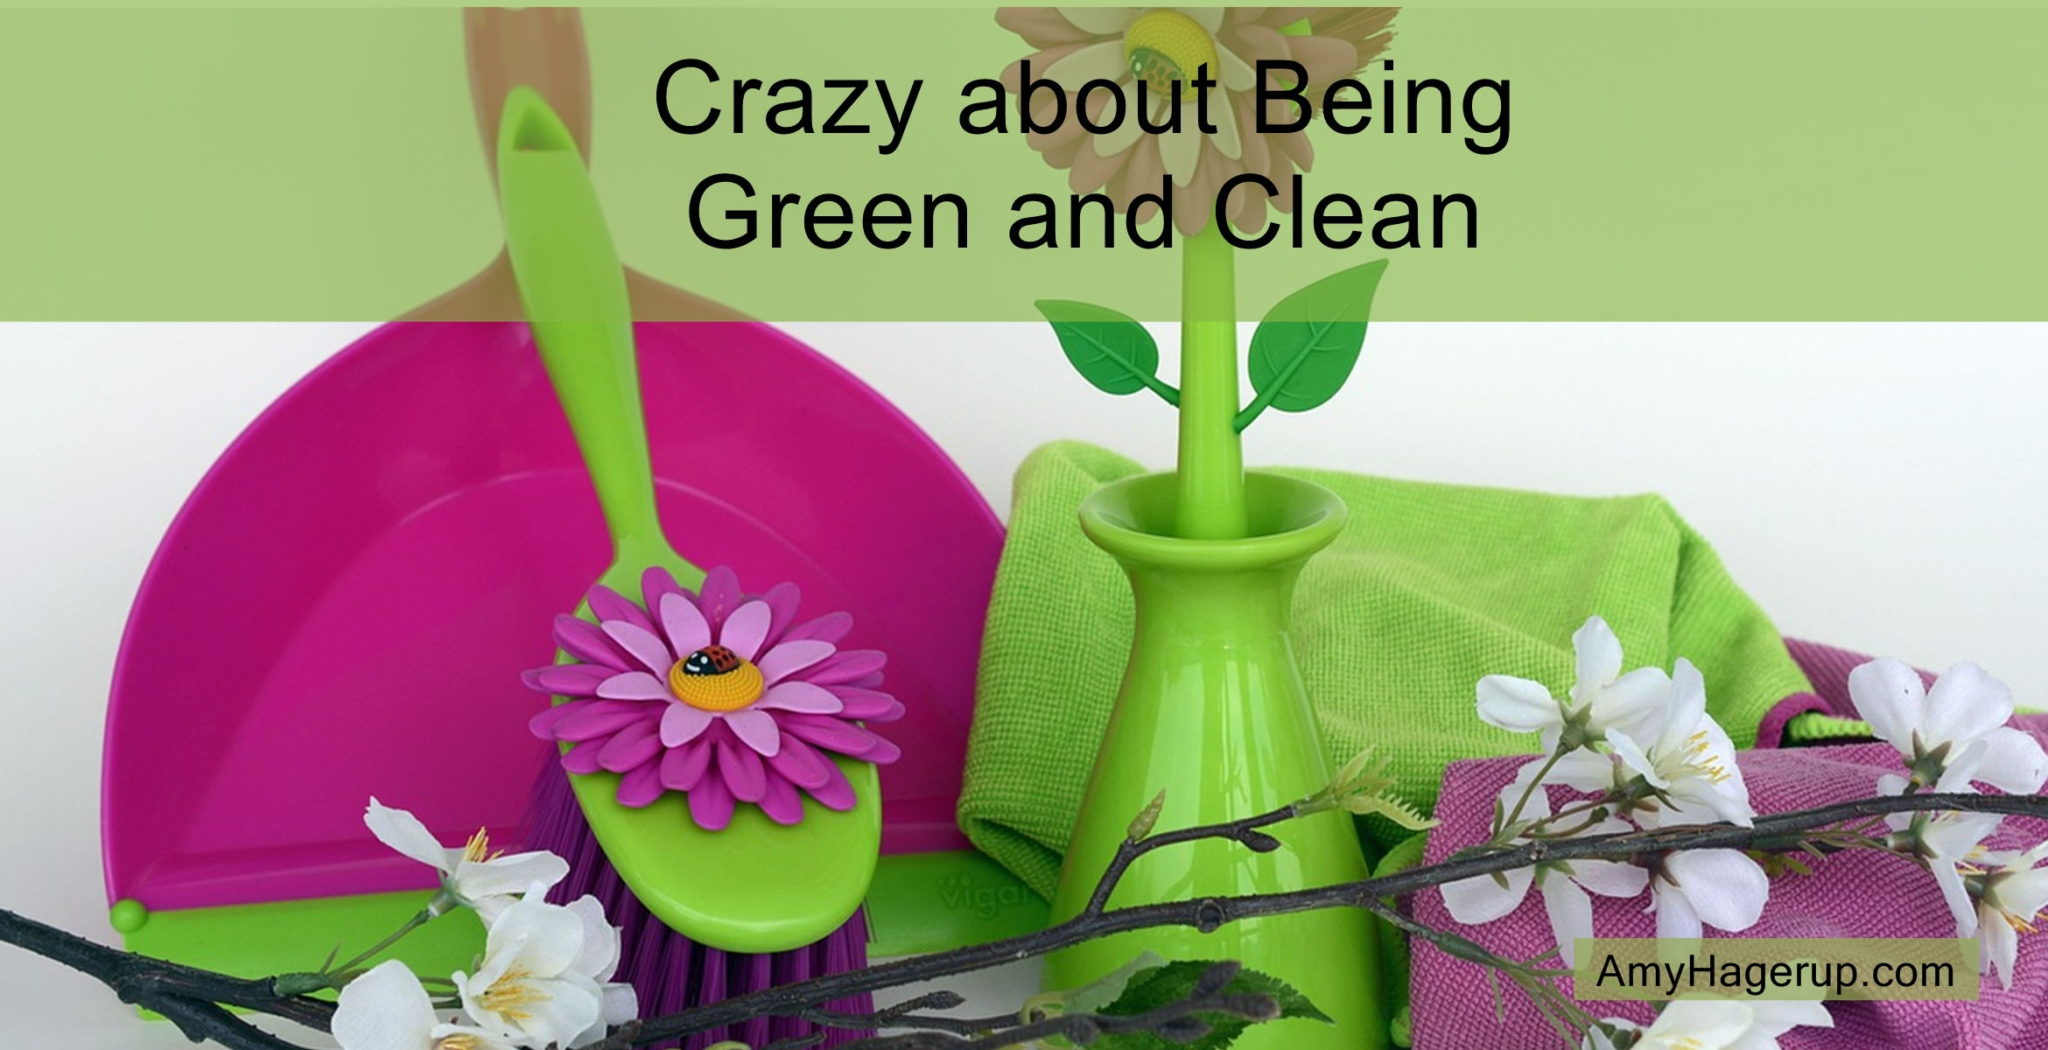 Get your home cleaned up with green cleaners. Go non-toxic all the way.